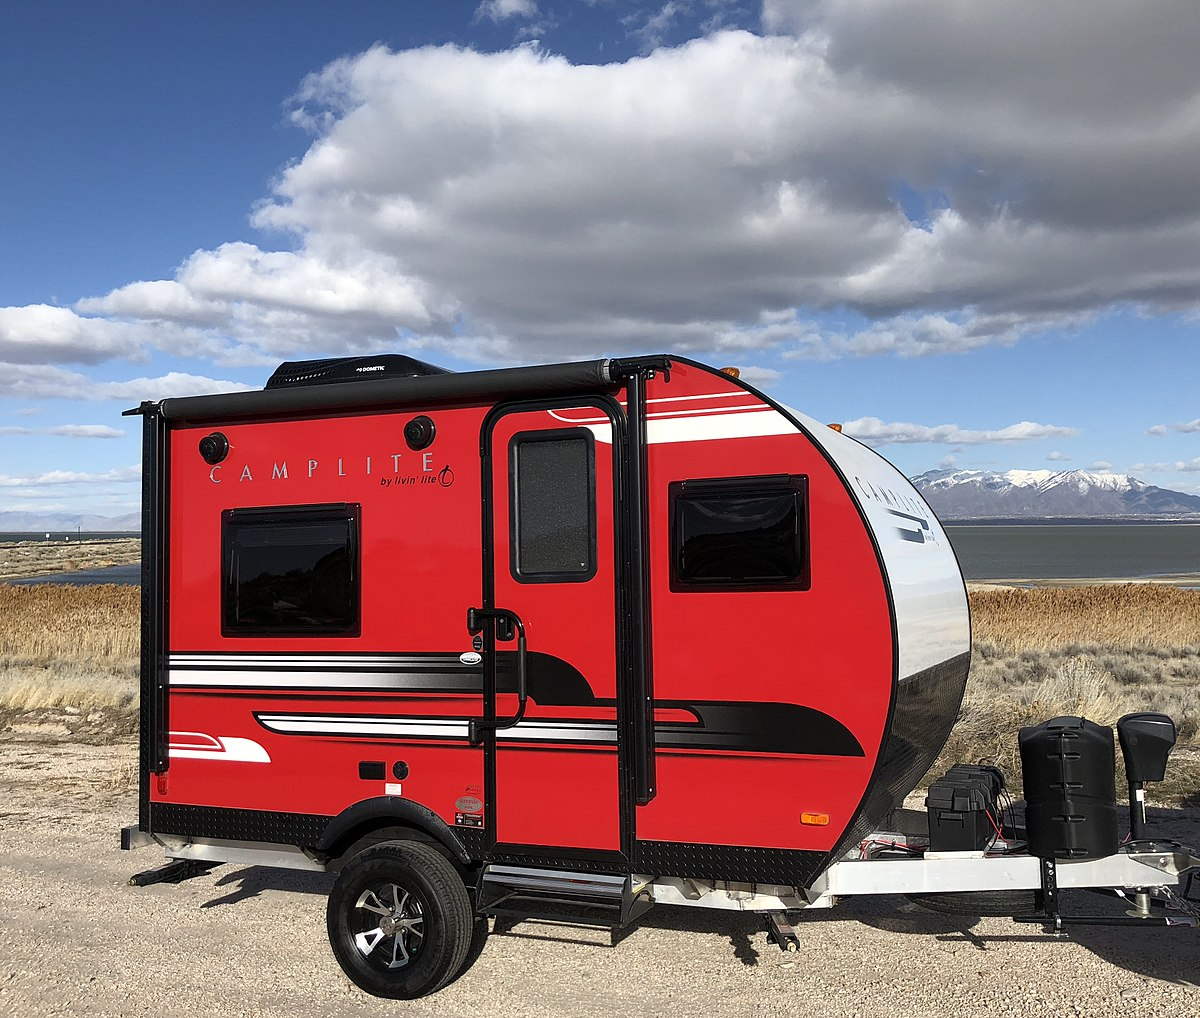 Travel Trailers With Outdoor Kitchens: Livin Lite Quicksilver Toy Hauler Fifth Wheel